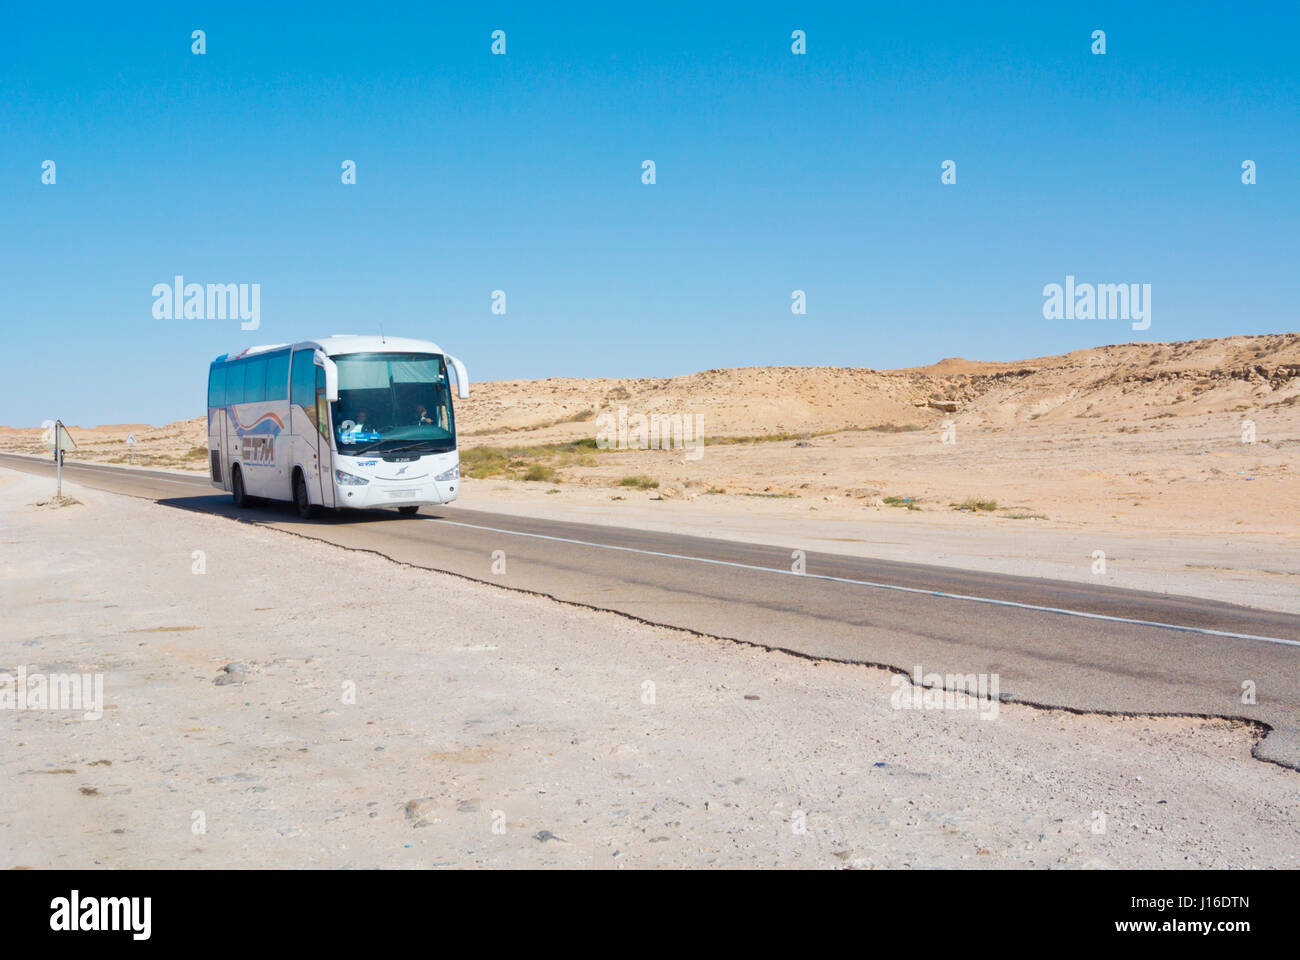 CTM bus, N1 road, between Boujdour and Dakhla, Western Sahara, administered by Morocco, Africa - Stock Image